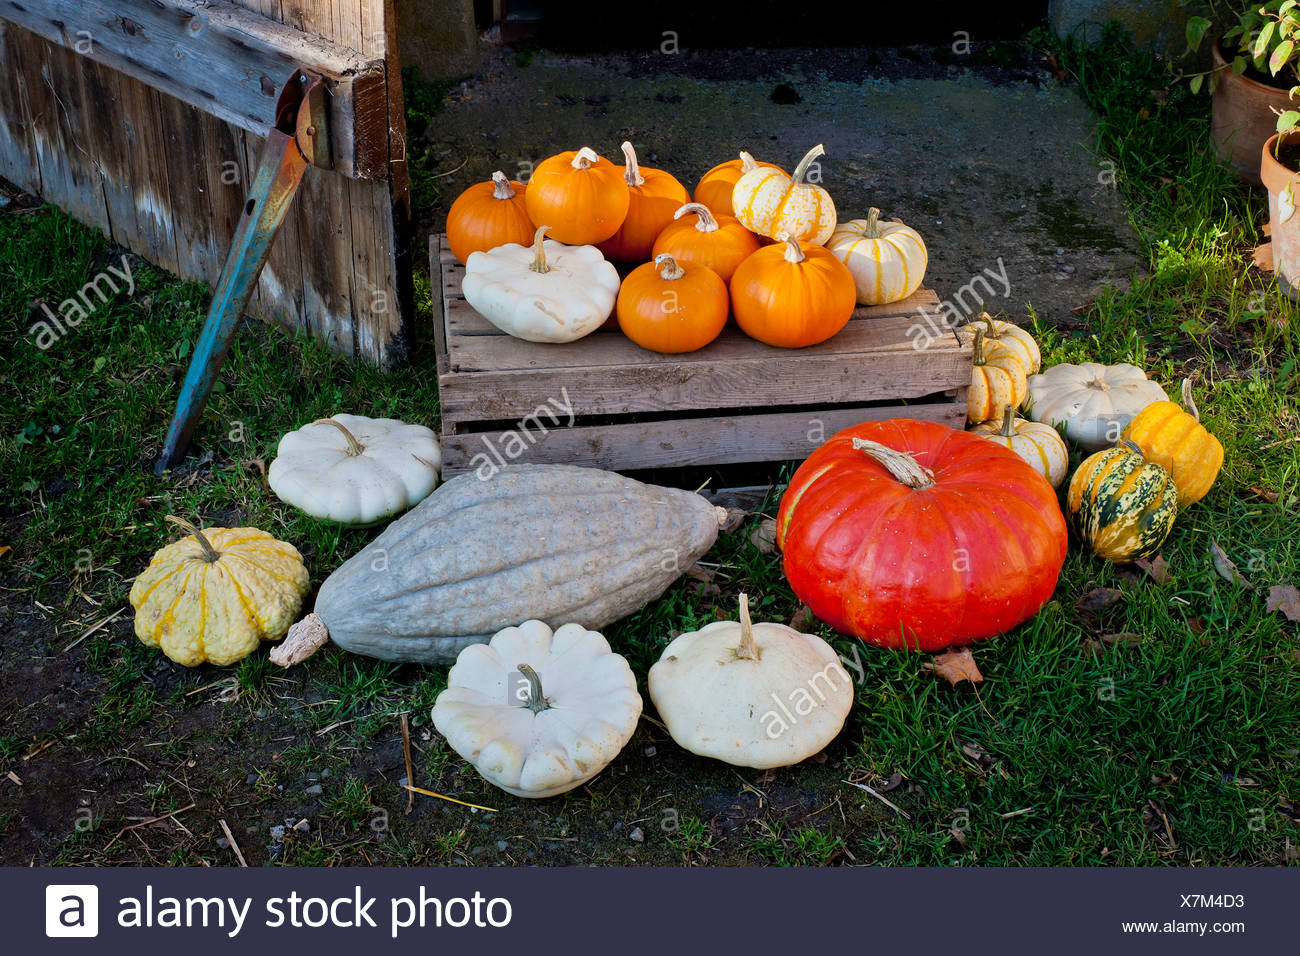 Elevated view of pumpkins - Stock Image